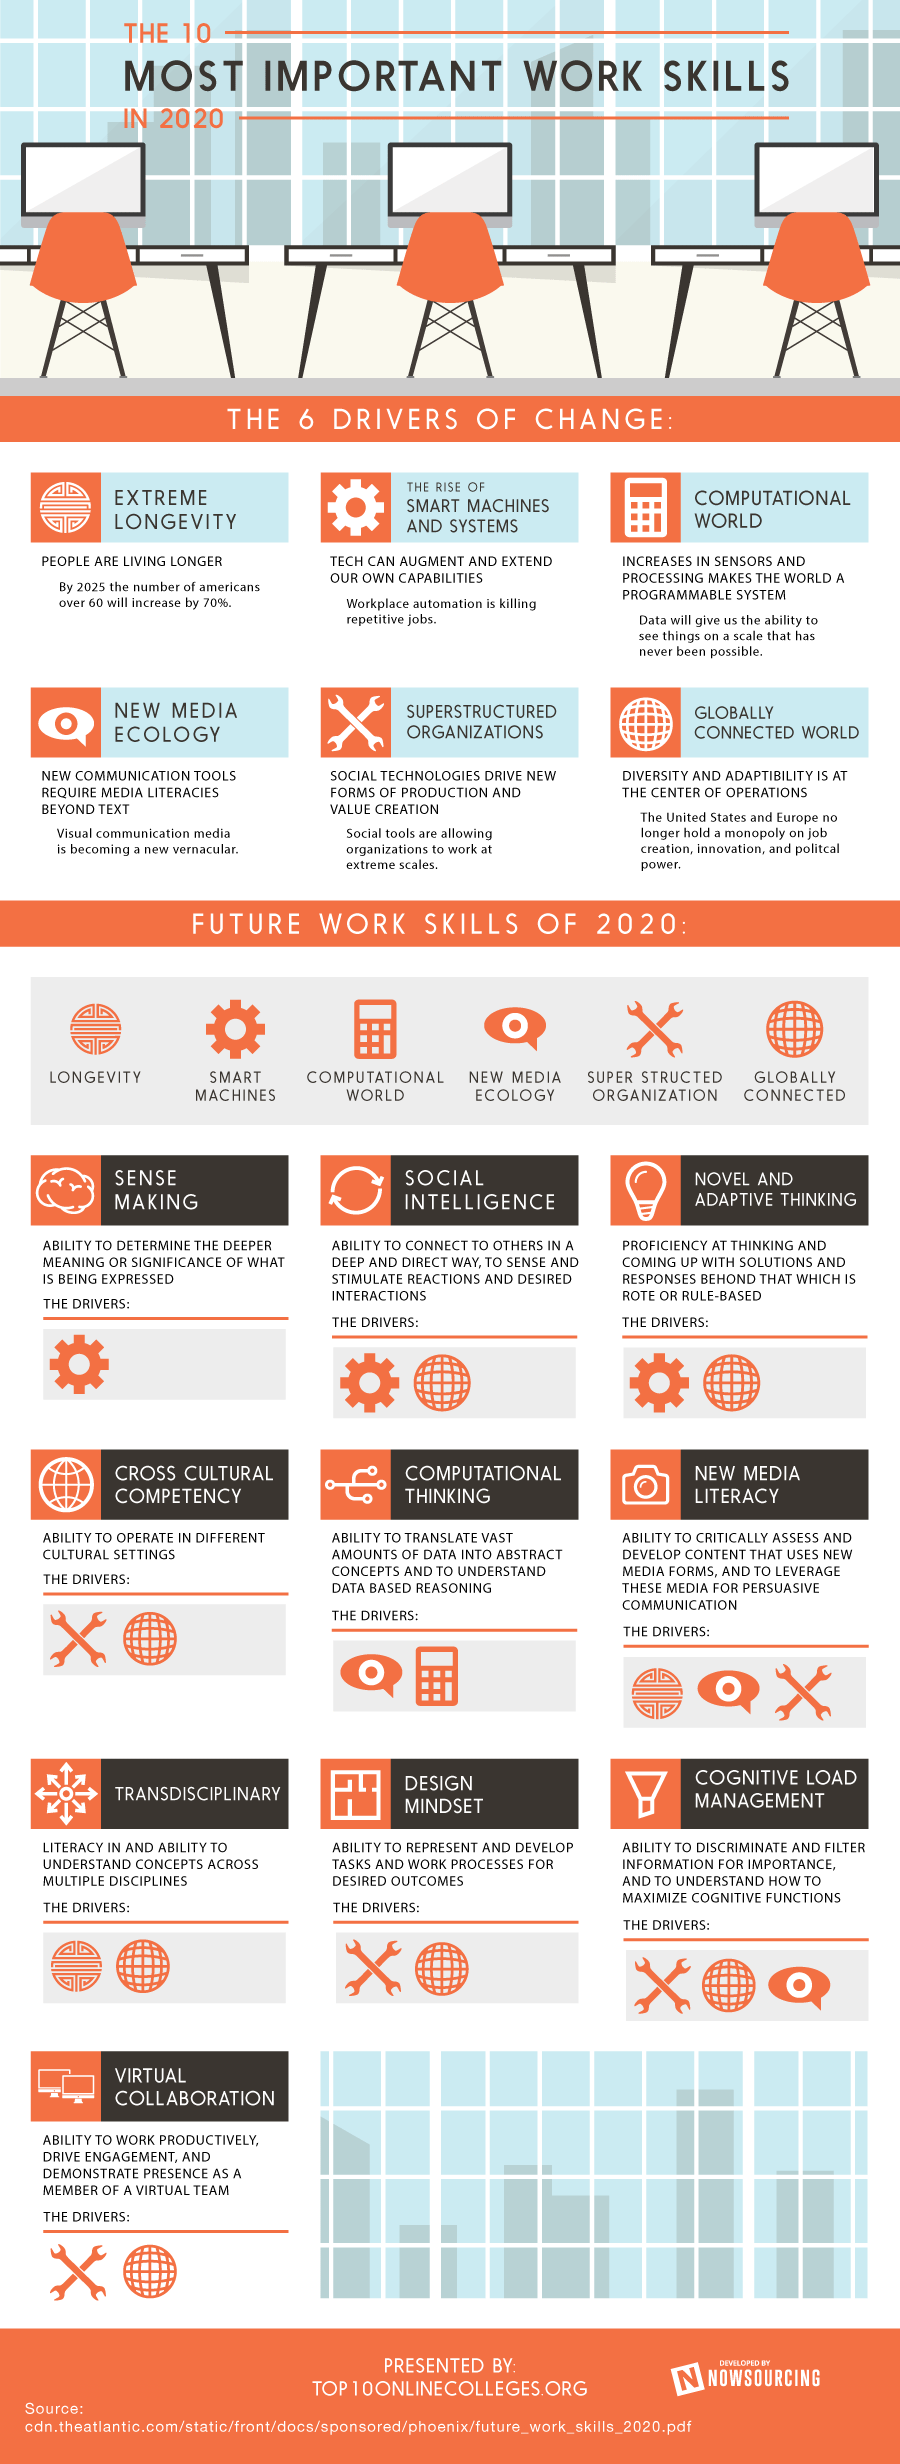 The most important work skills in 2020